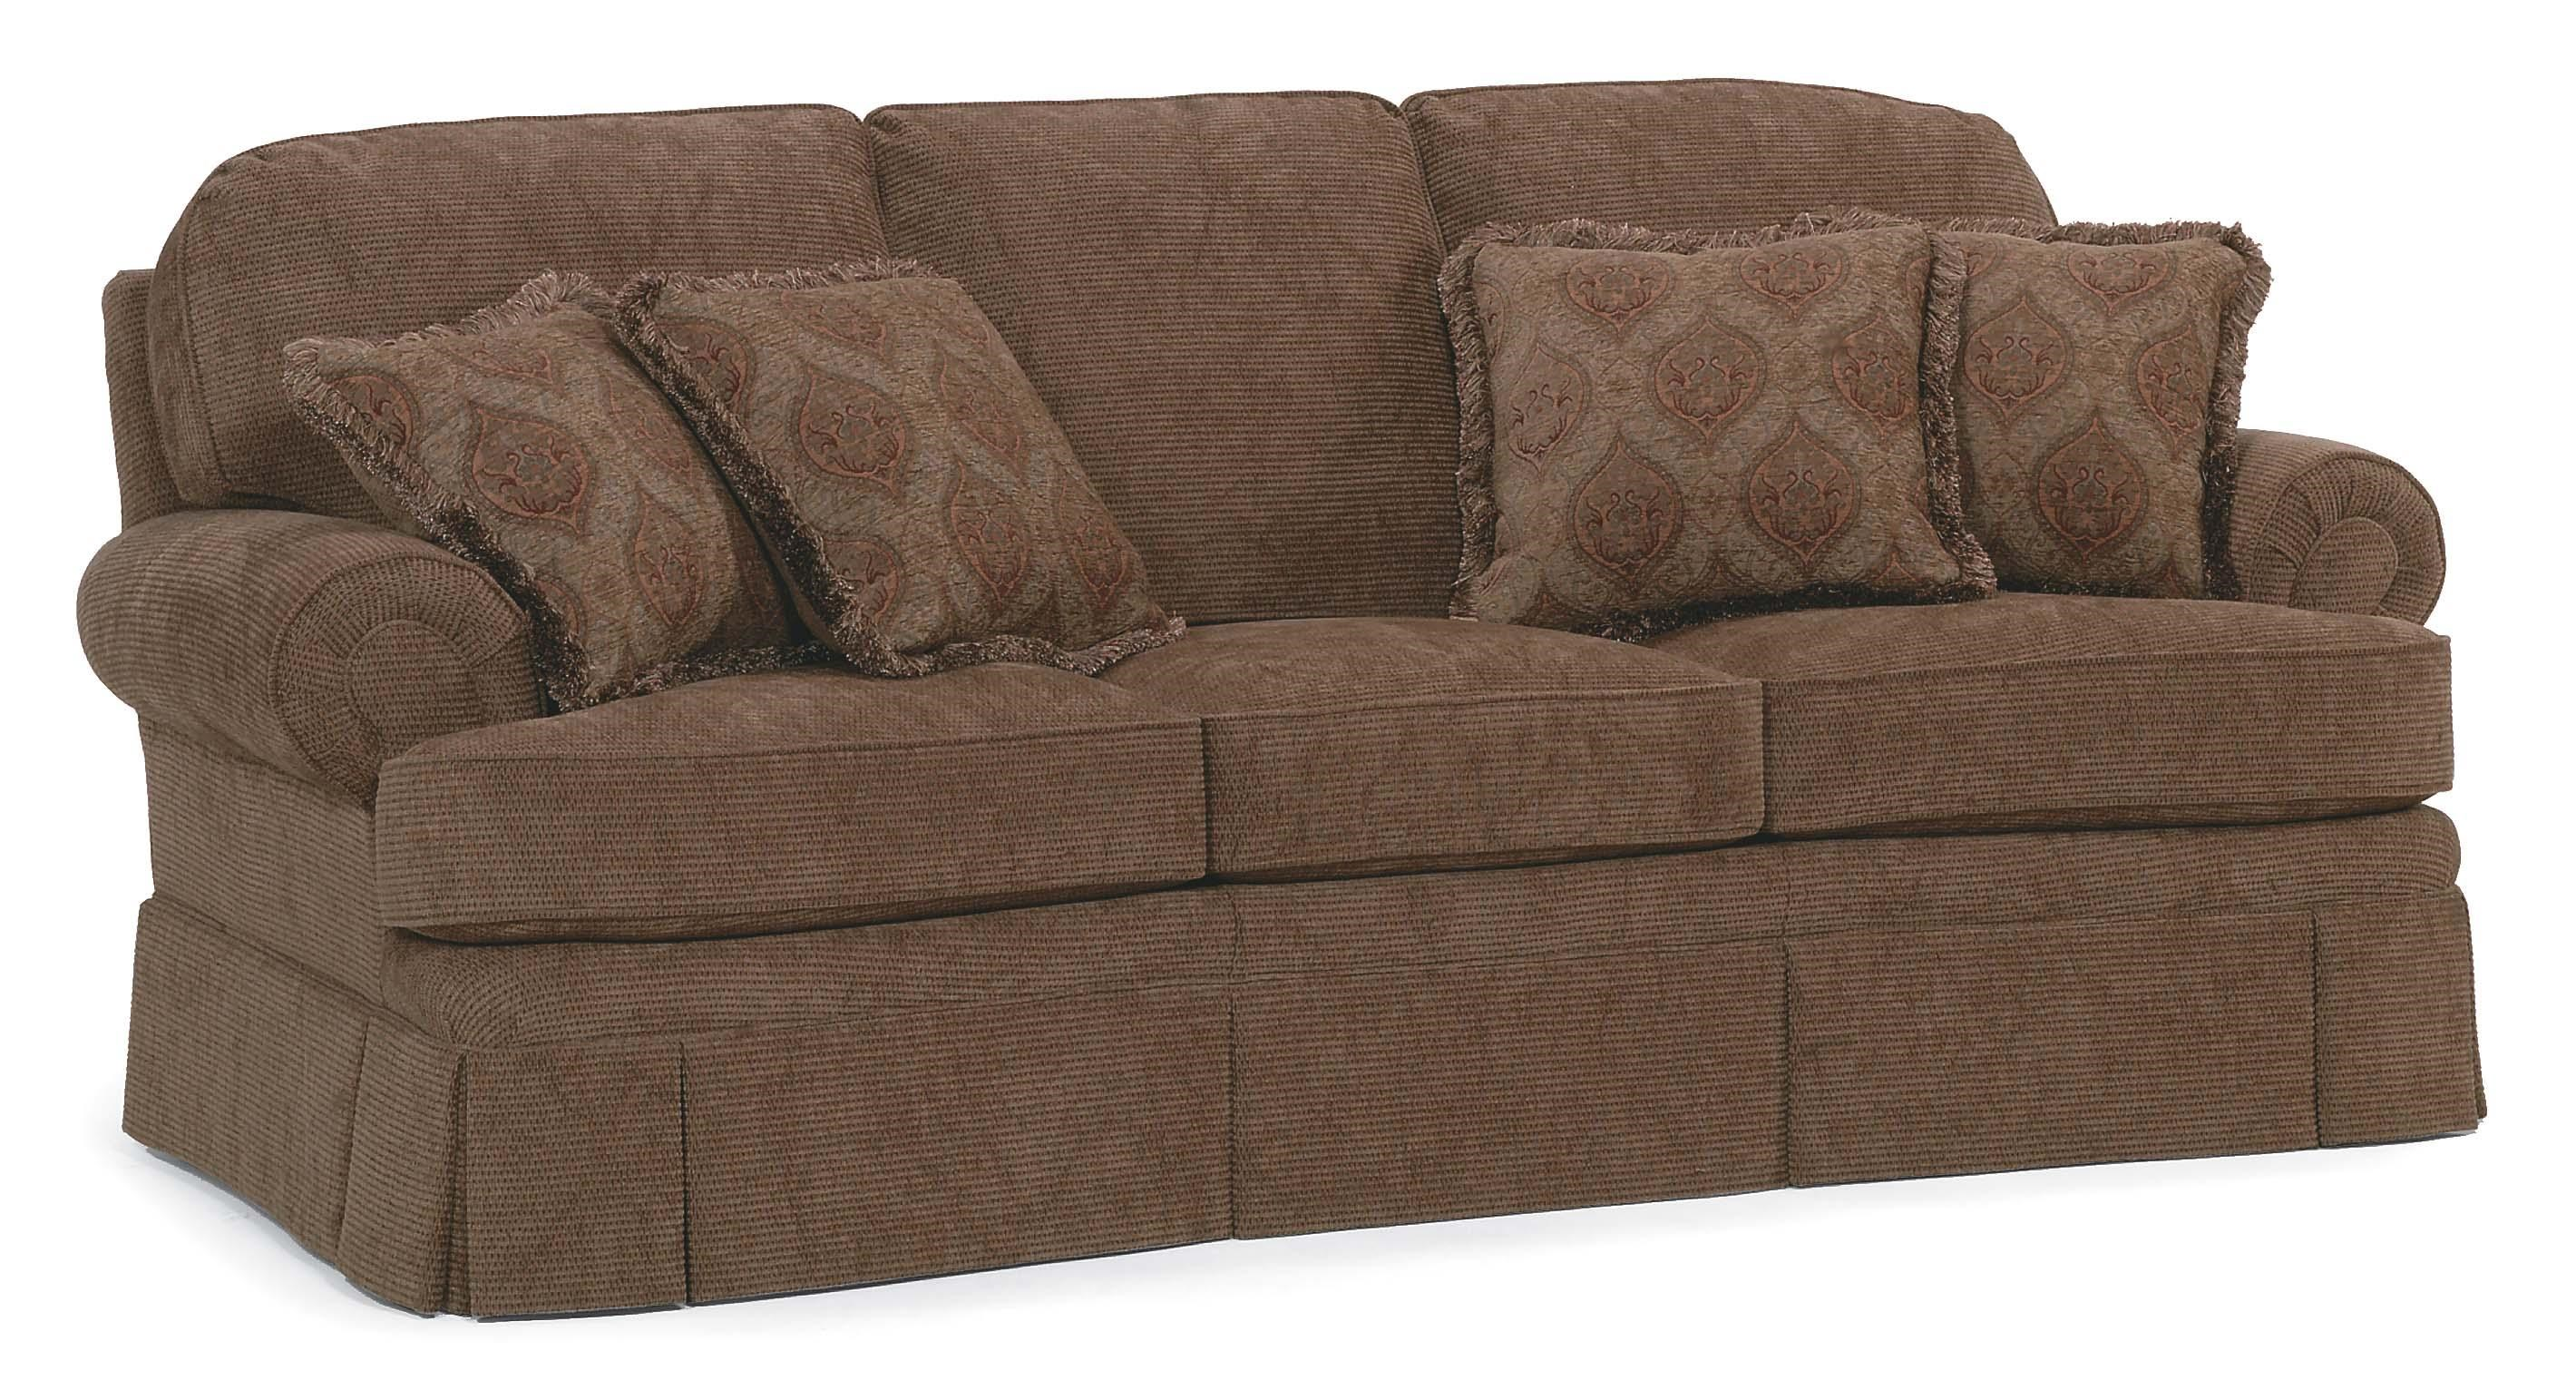 Merveilleux Fairfield Sofa Accents Stationary Sofa With Rolled Arms And Skirt